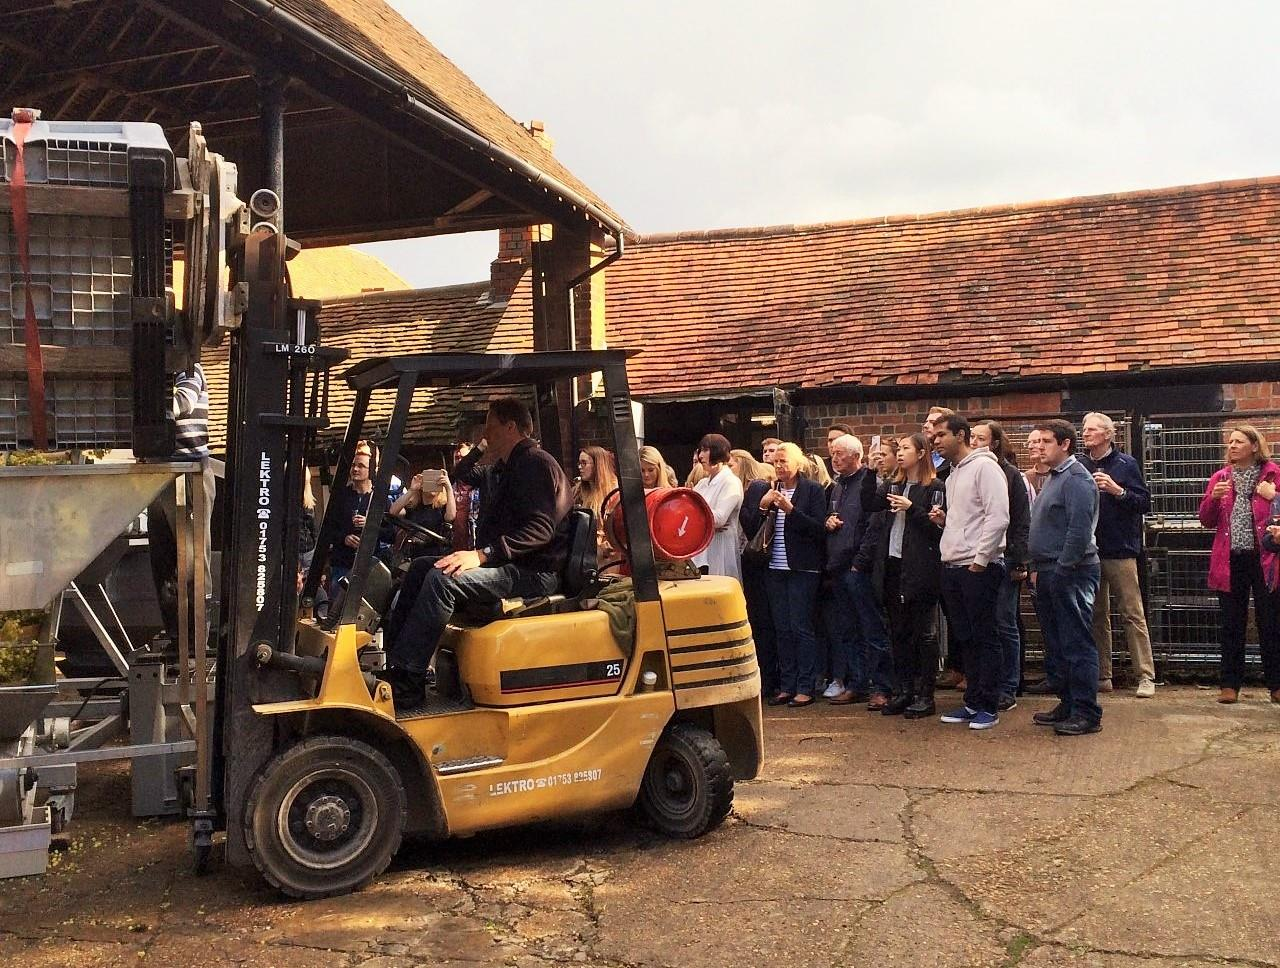 Sunday 7th June 2020 at 2 pm - Vineyard Tour & Wine Tasting